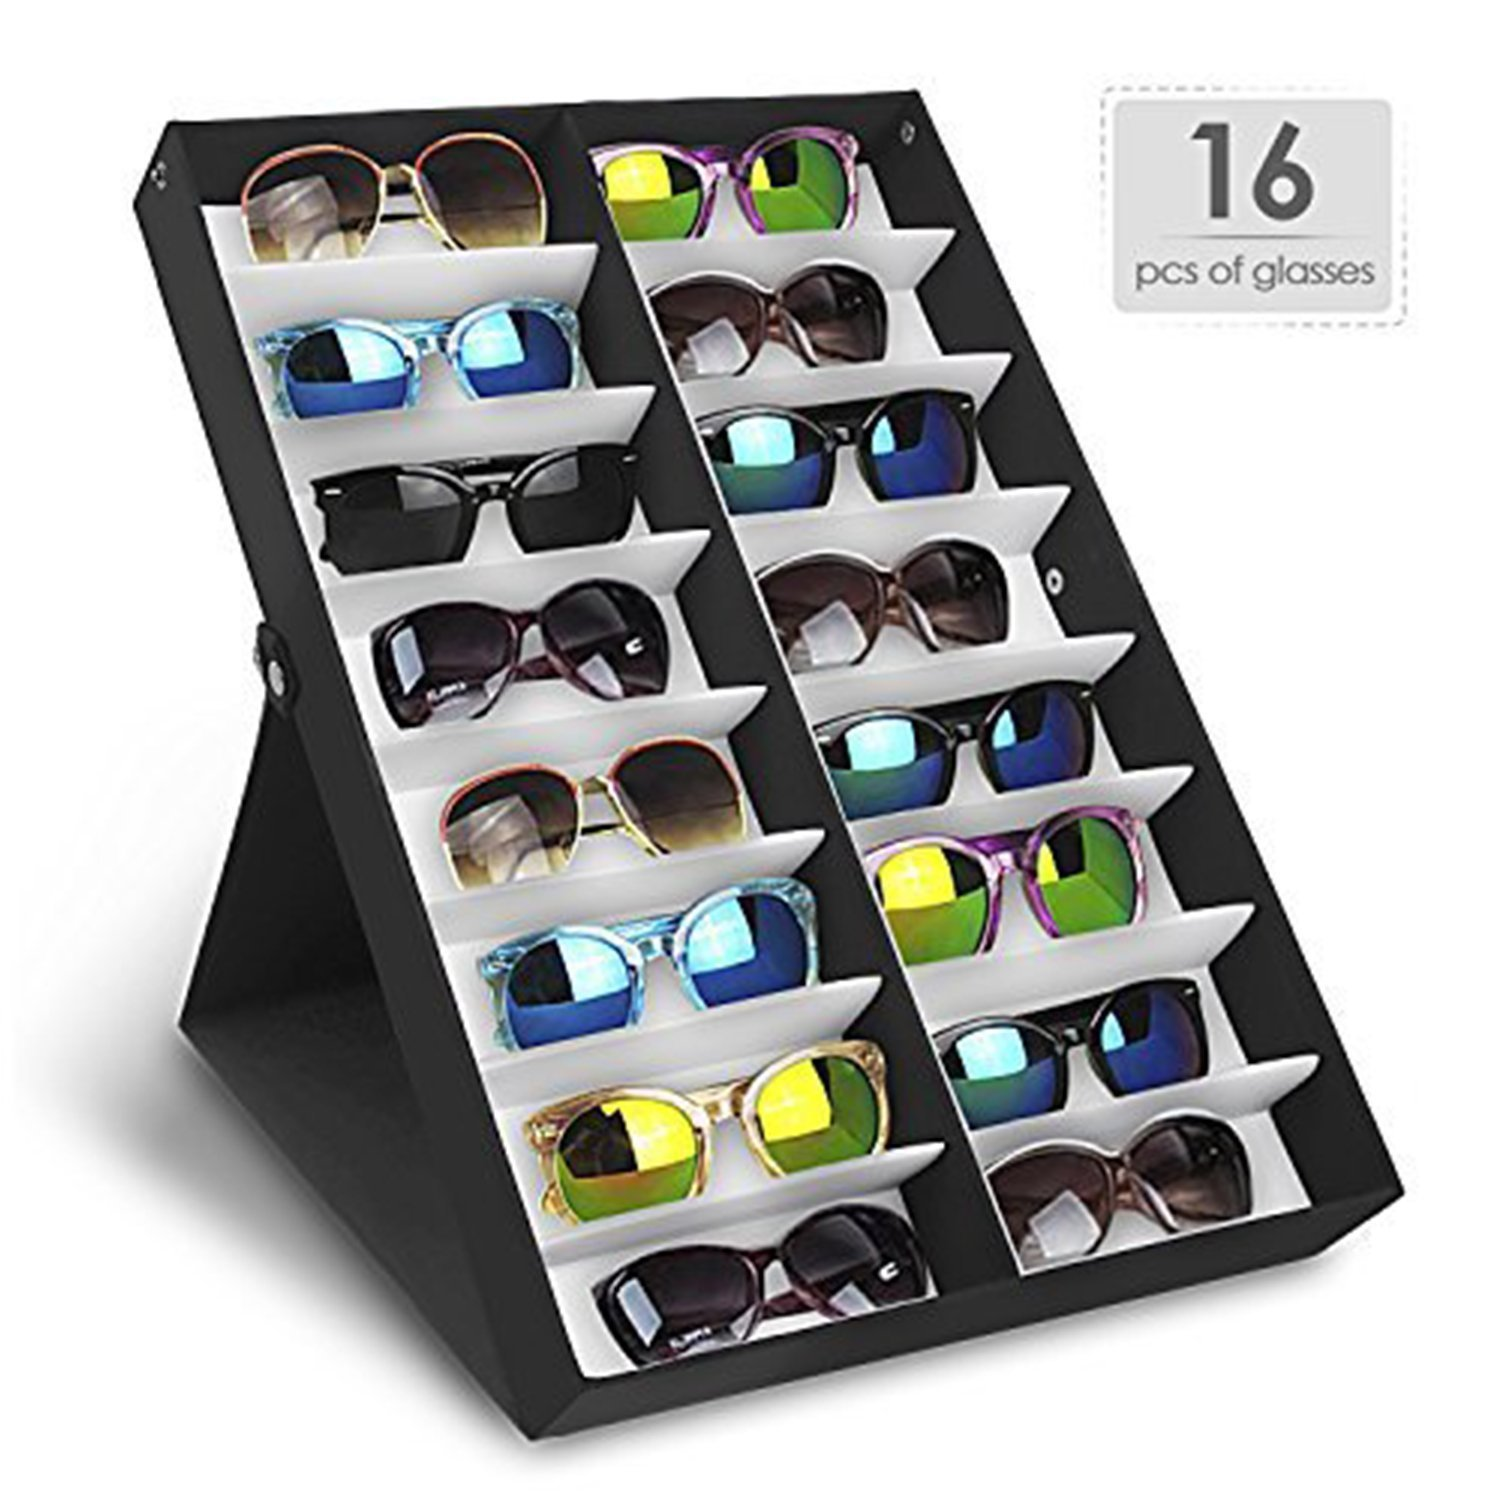 Amzdeal Sunglasses Display Case Eyeglasses Eyewear Storage Display Box with Folding Lid for Glasses and Jewellery Organizer (16 compartments) No